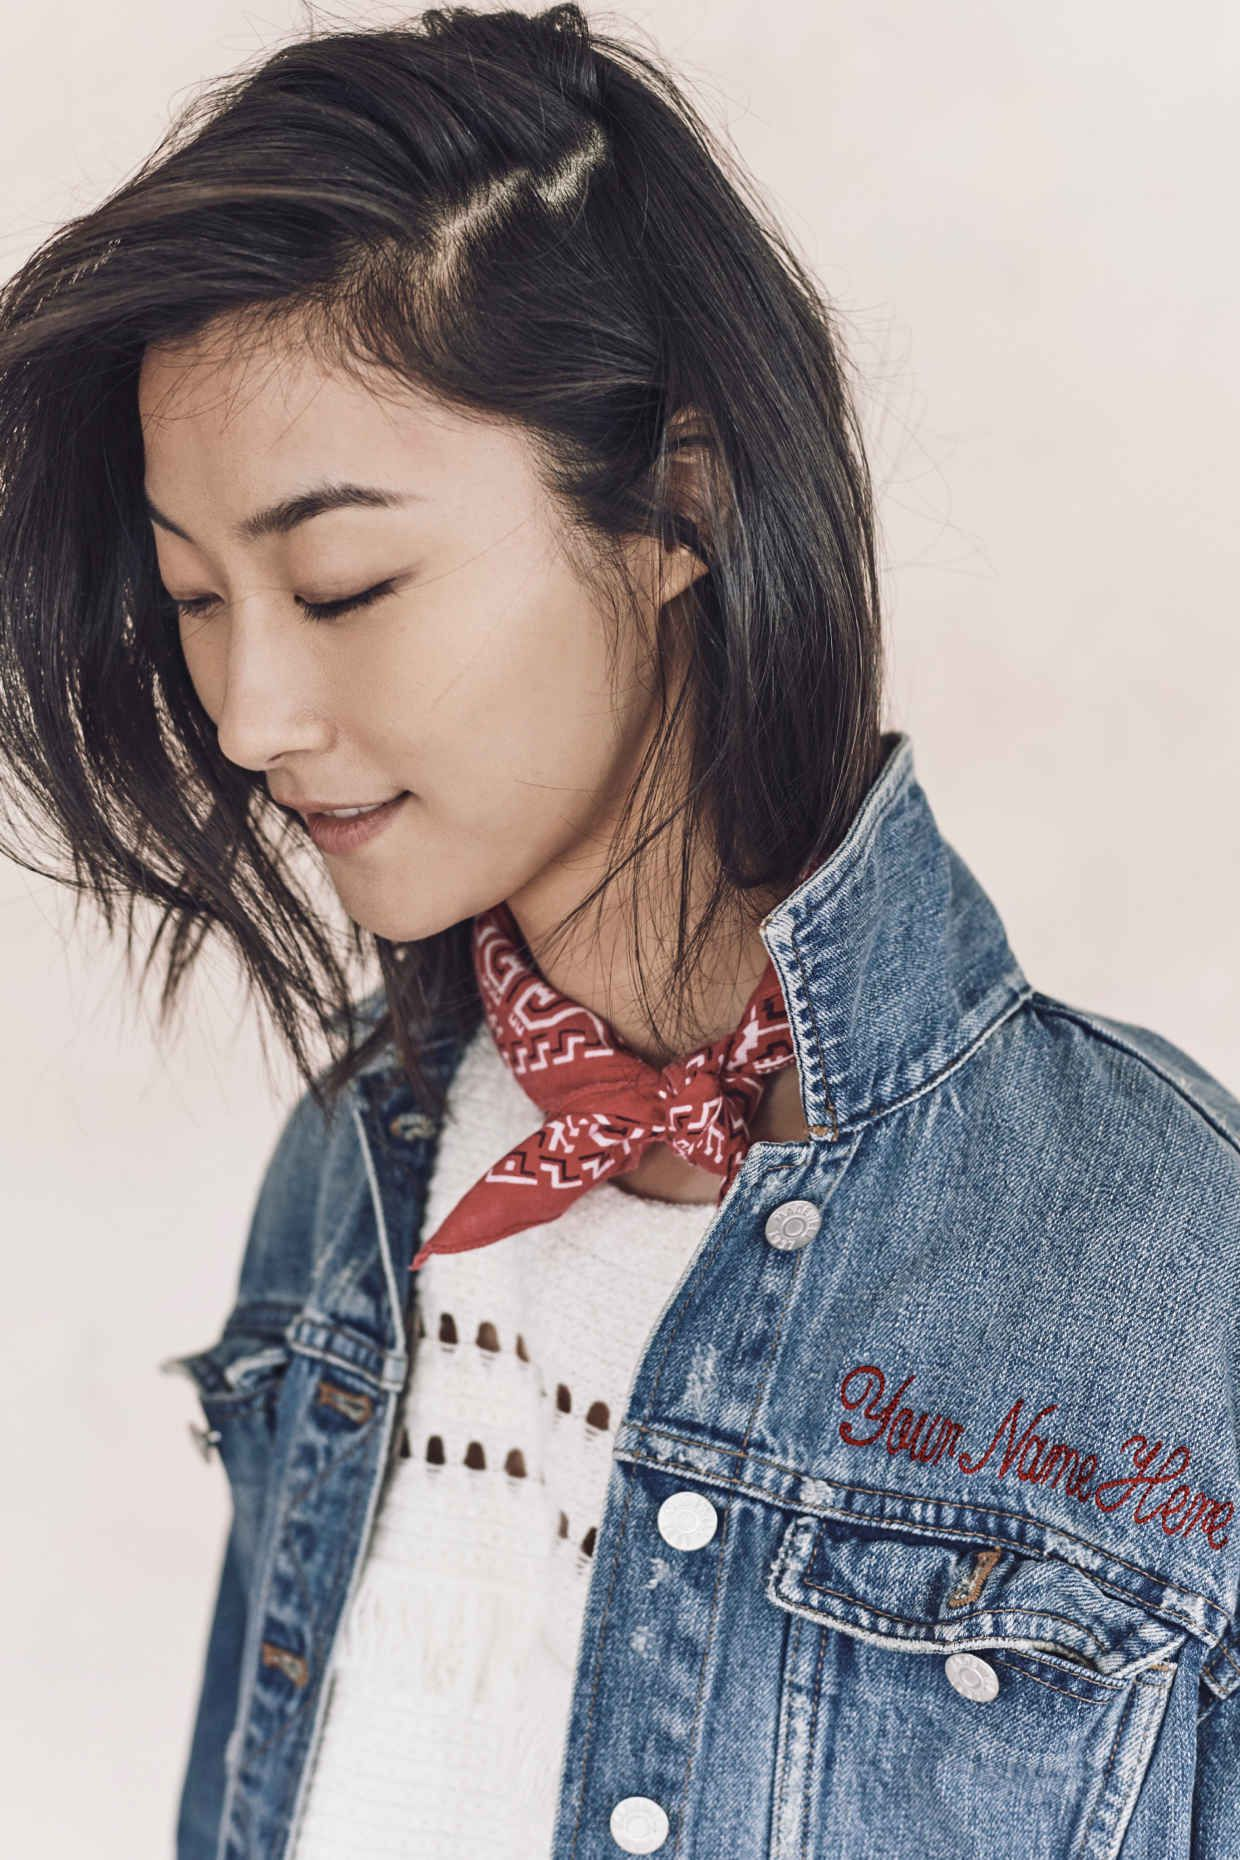 Madewell Spring 2016 Honestly Wtf Lookbook Outfits Fashion Style [ 1860 x 1240 Pixel ]